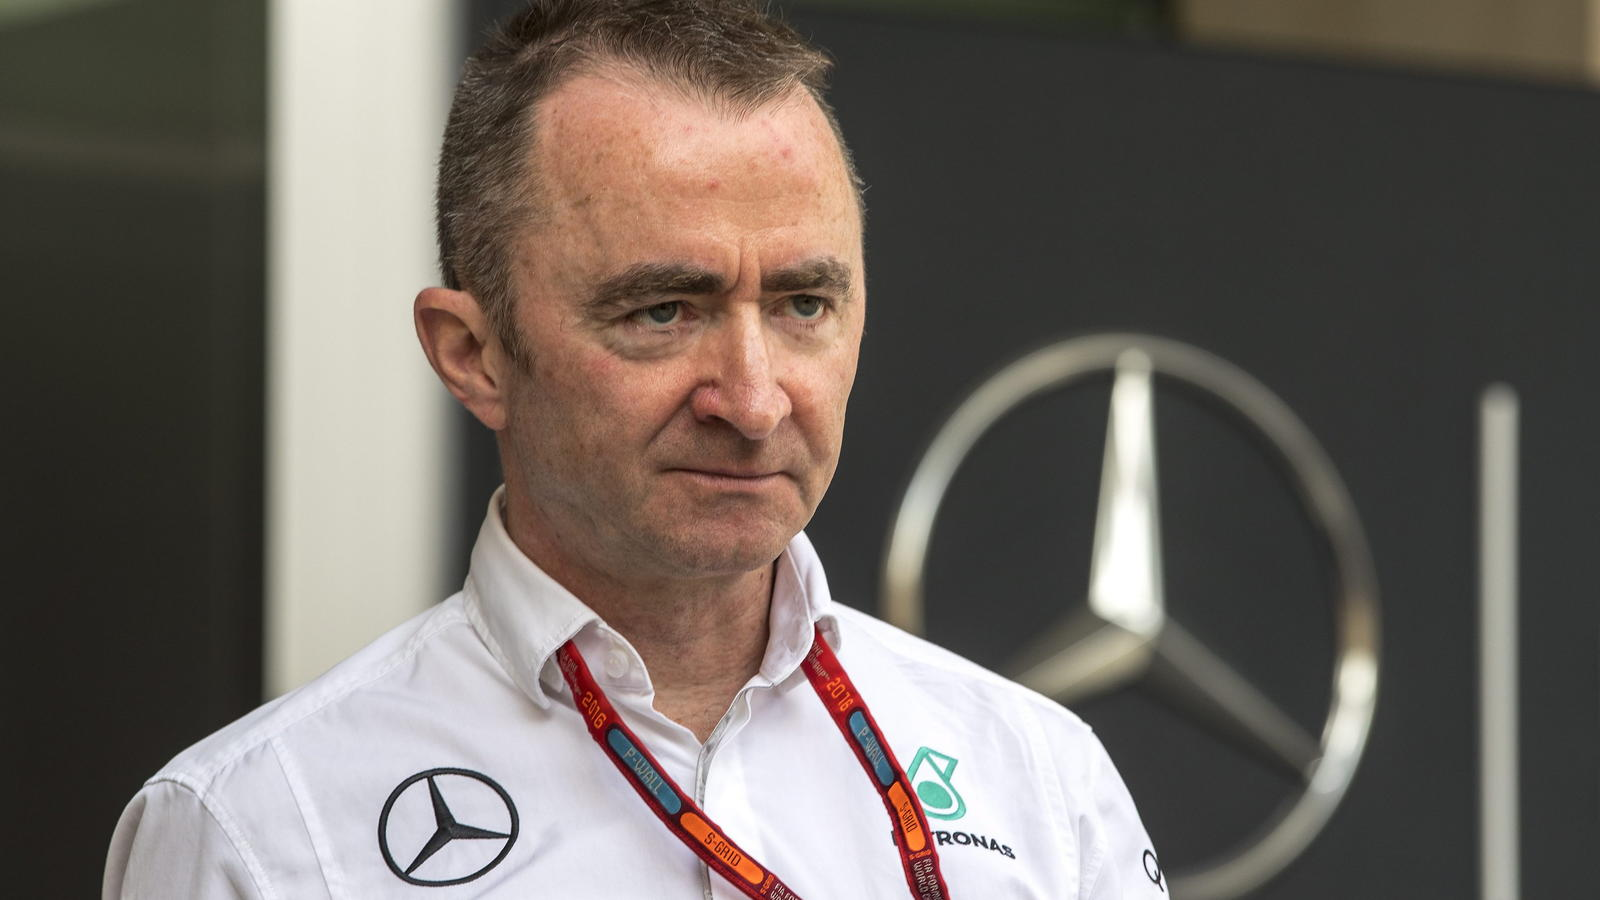 epa05647135 Paddy Lowe, Mercedes AMG Petronas Formula One team Executive Director (Technical), during the practice session at Yas Marina Circuit in Abu Dhabi, United Arab Emirates, 25 November 2016. The Formula One Grand Prix of Abu Dhabi will take p